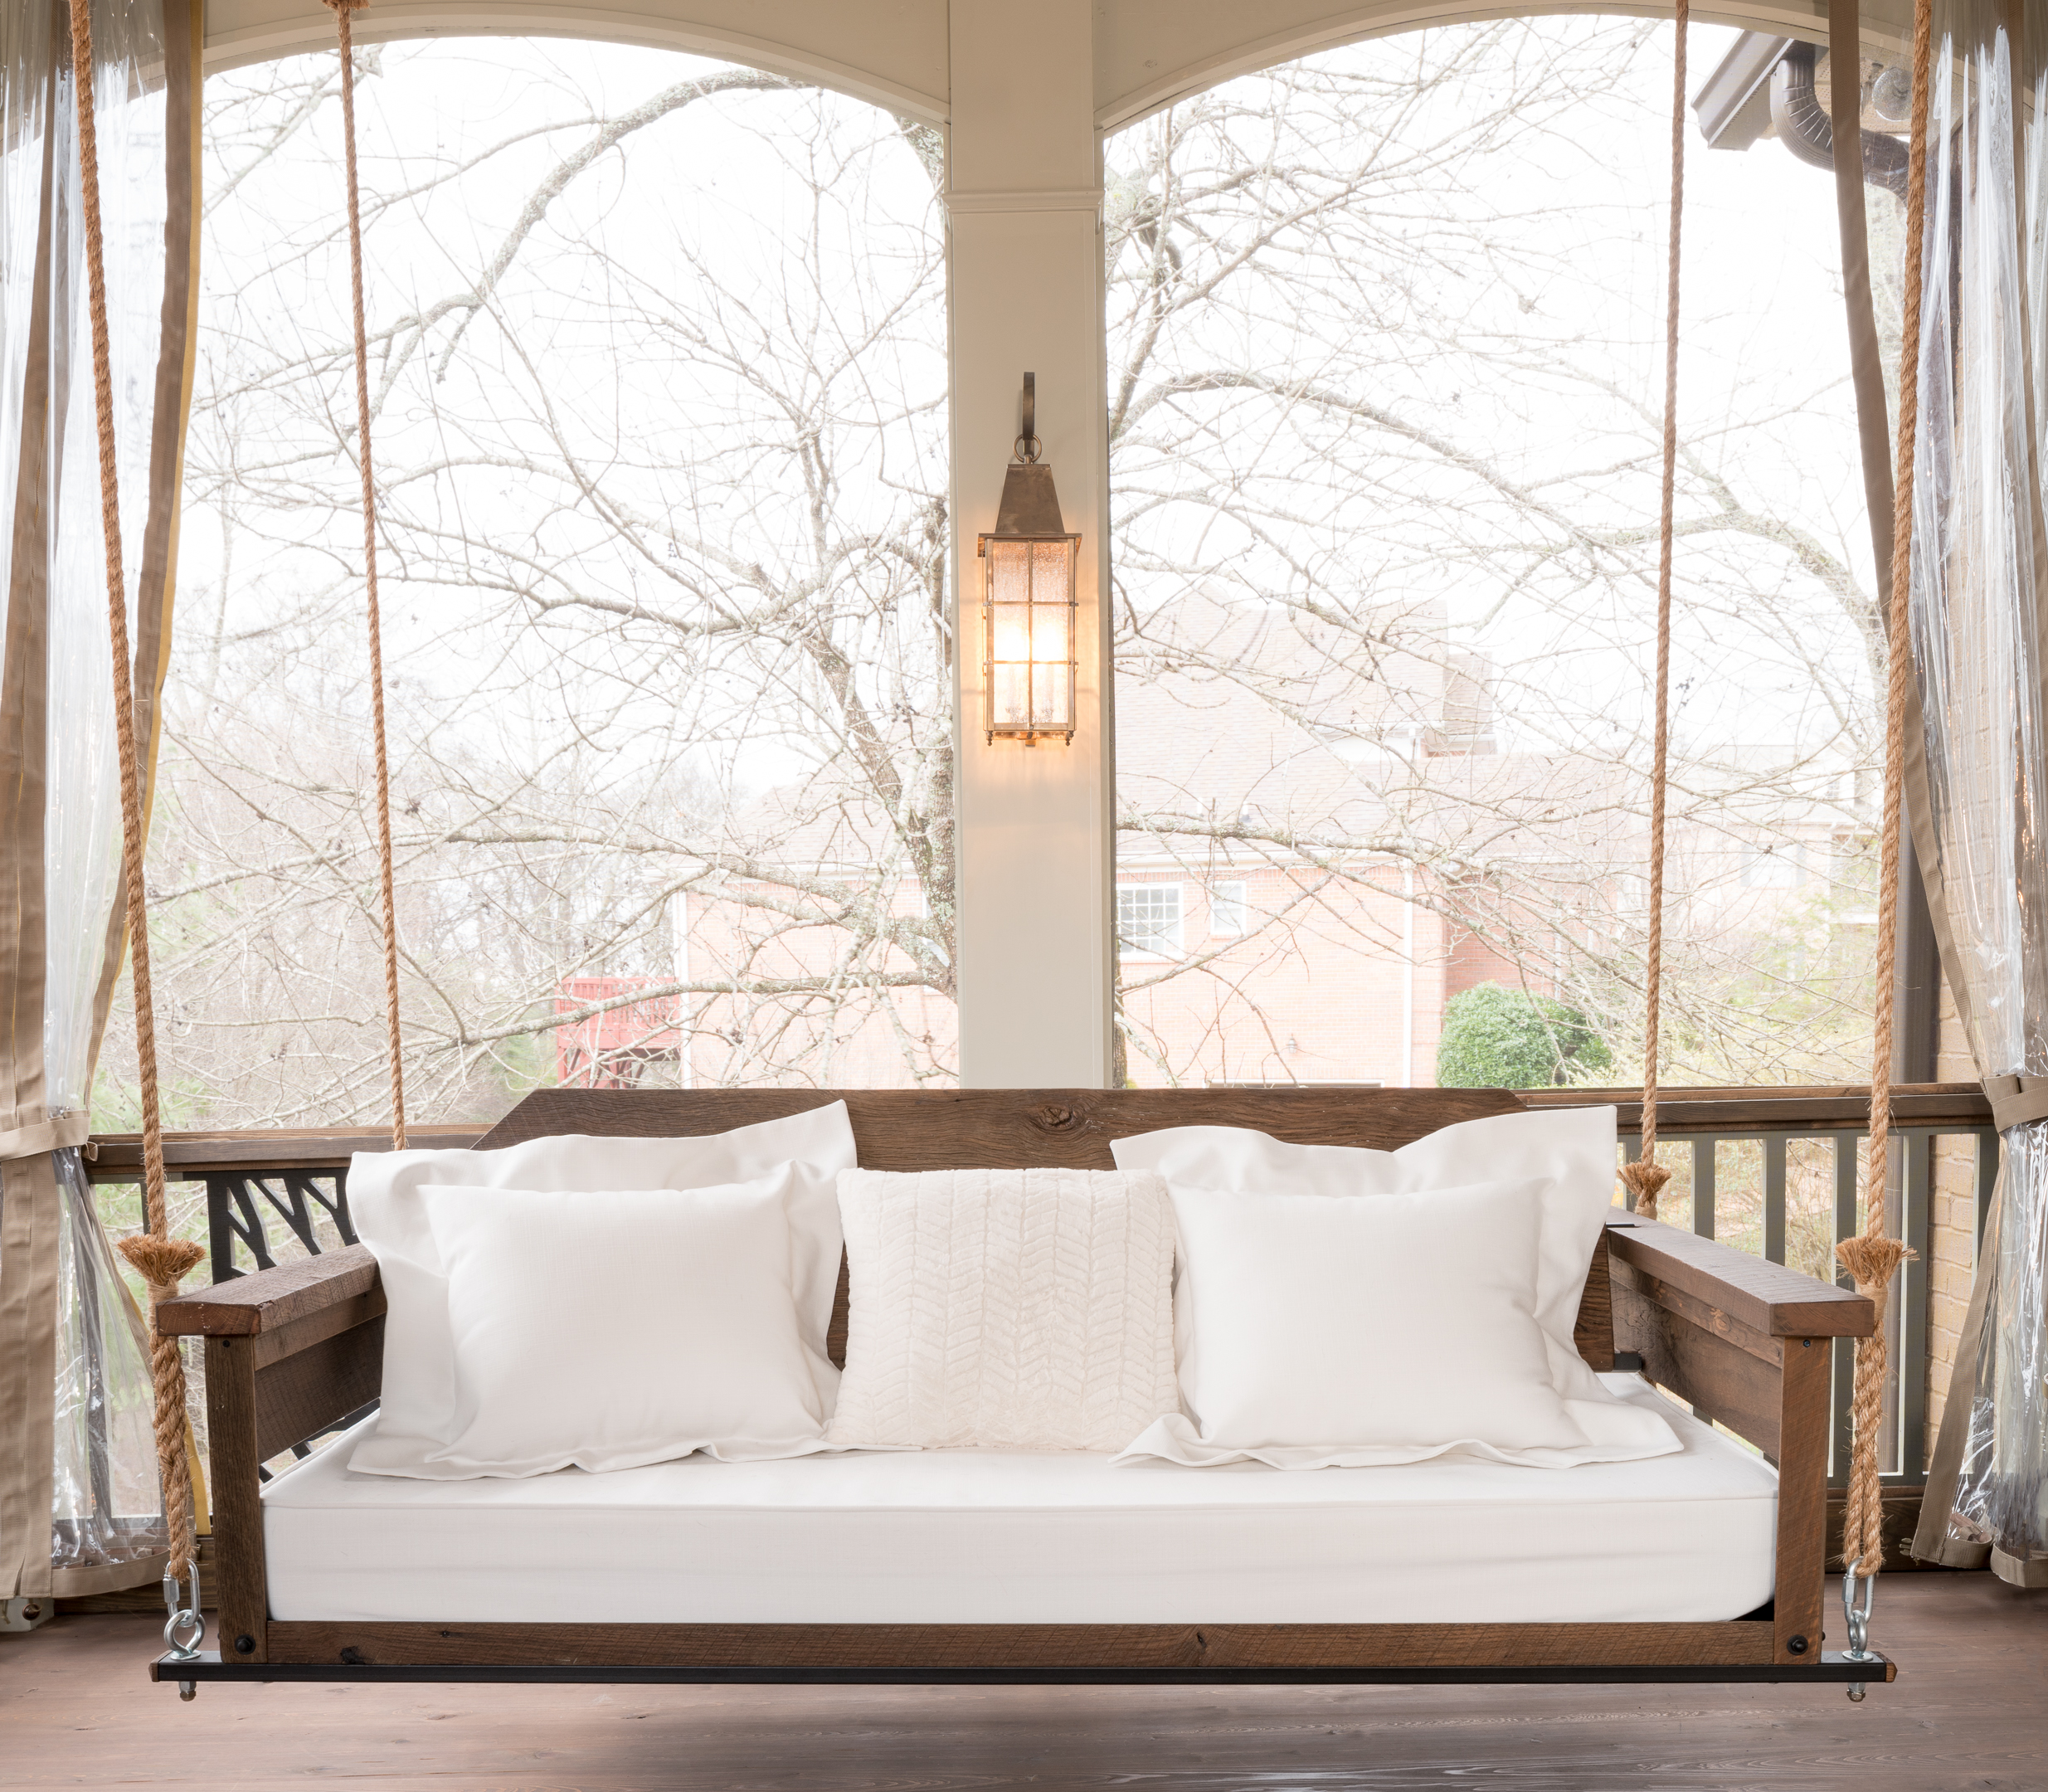 The lynnville farm bed swing the porch companythe porch company bed swing dimensions solutioingenieria Images